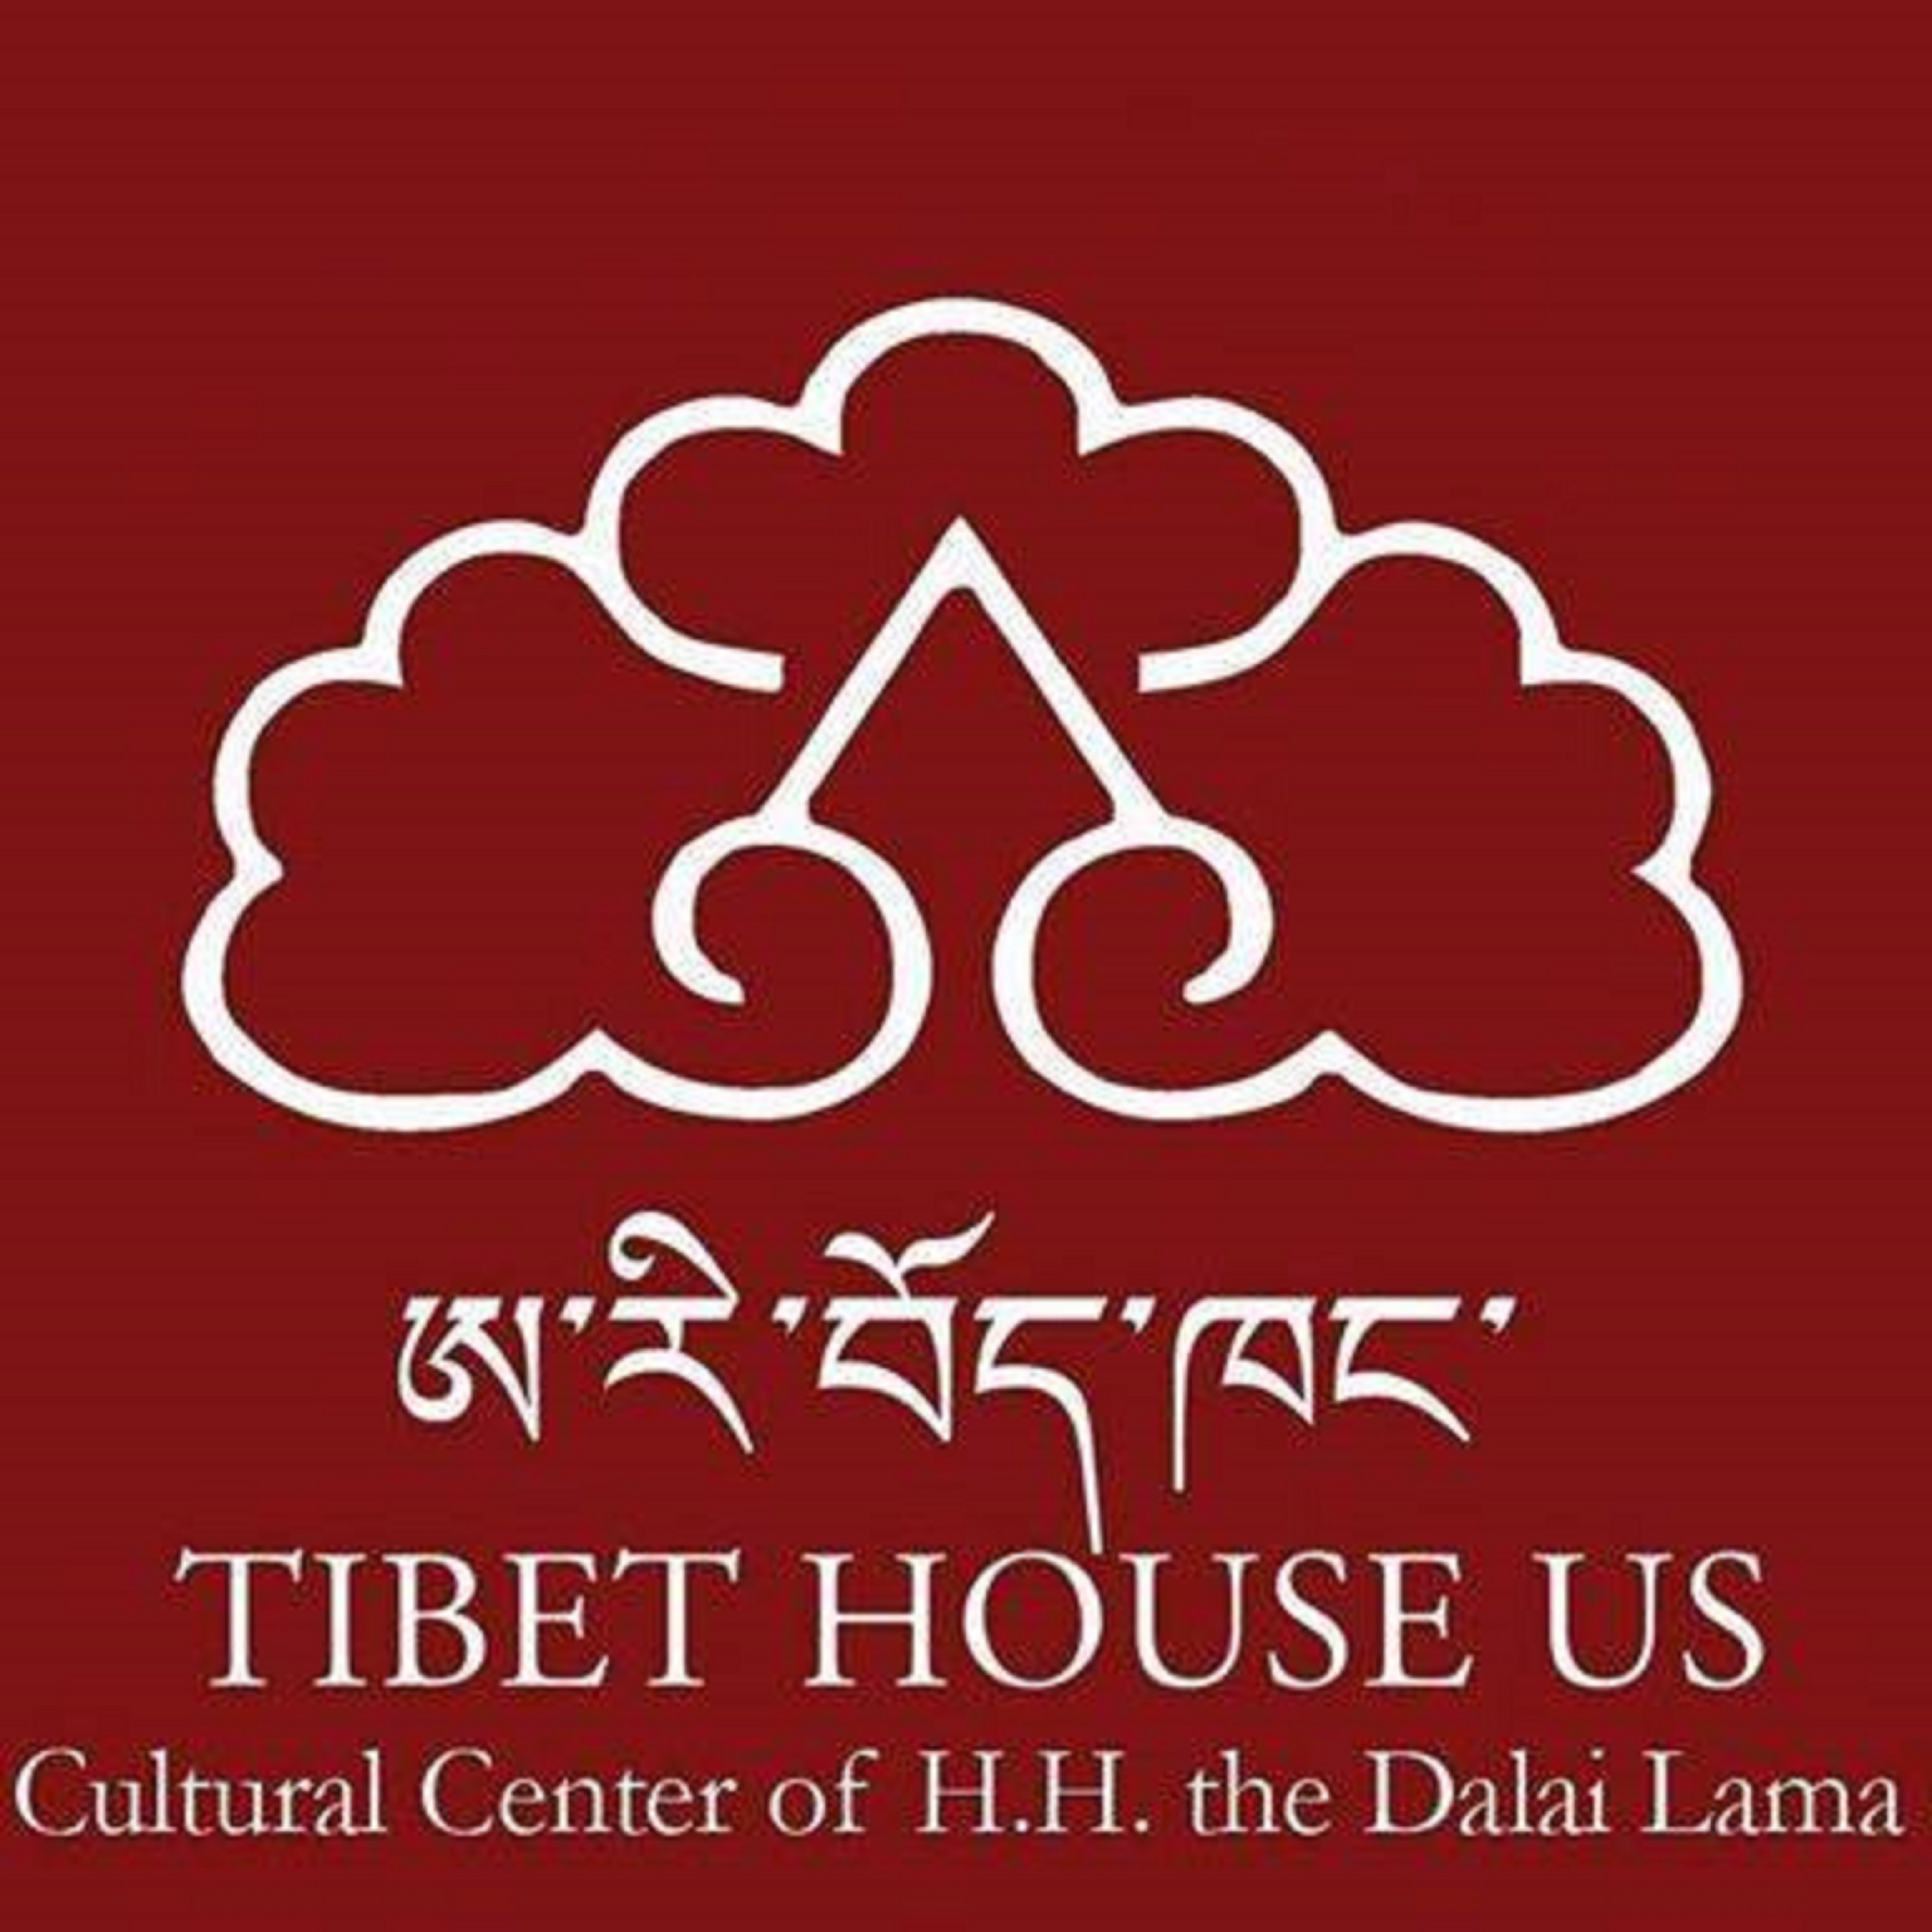 Tibet House US Announces The Dalai Lama Global Vision Summit